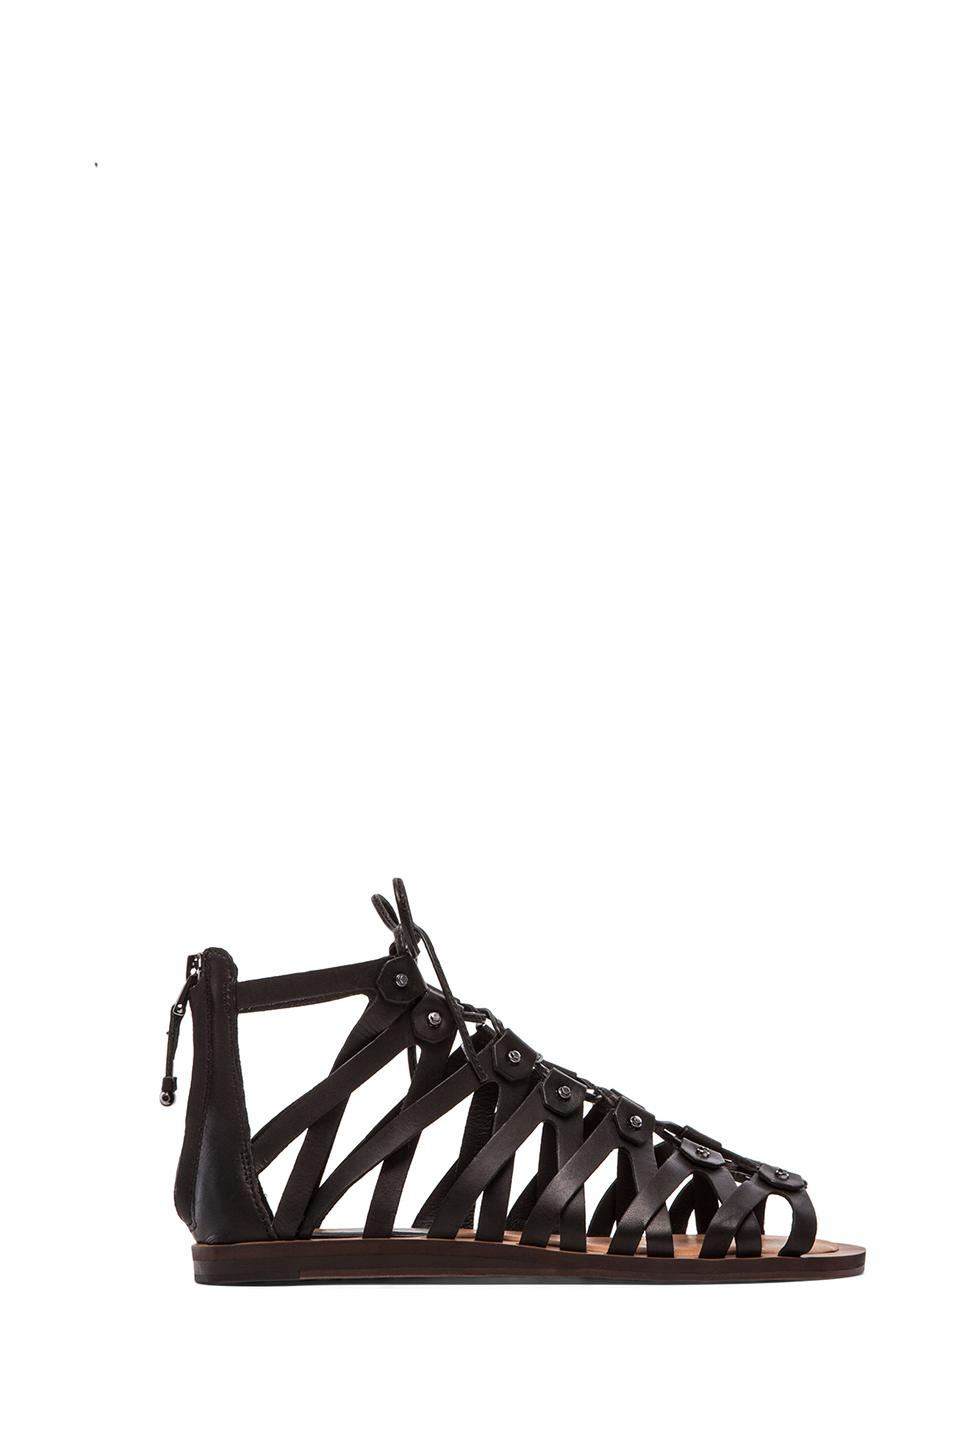 Dolce Vita Fray Gladiator in Black